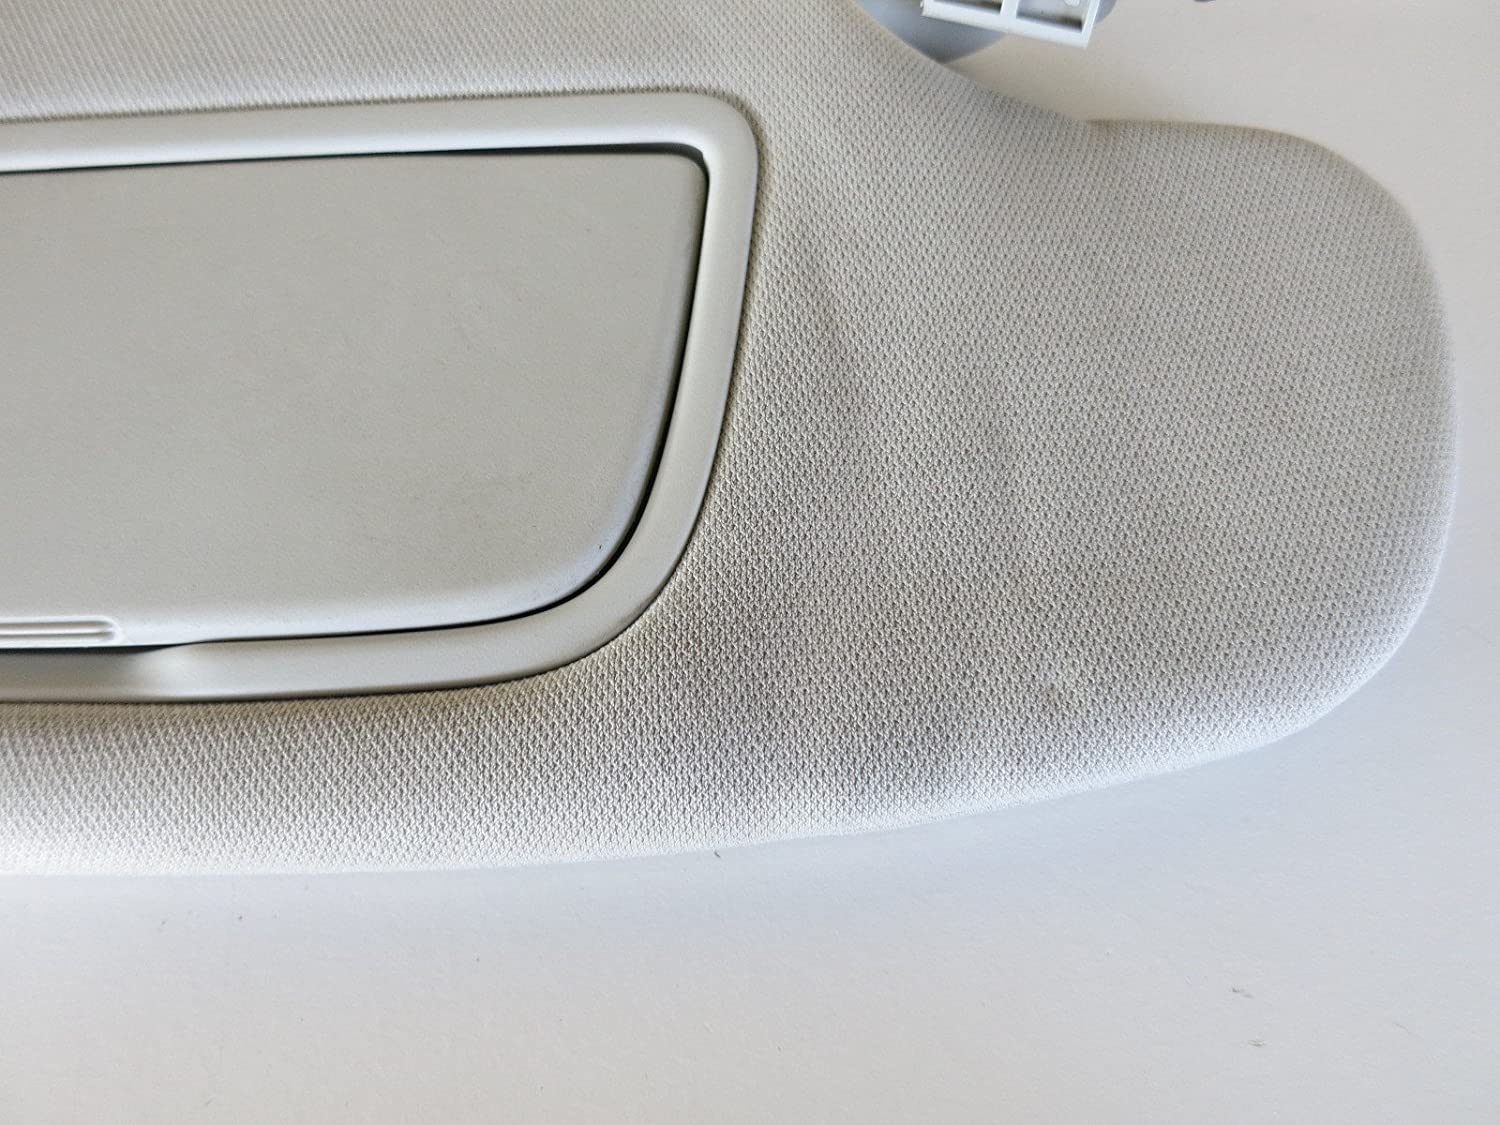 Riverside Ford Havelock Nc >> 2015 Ford Fusion Passenger Side Mirror Replacement